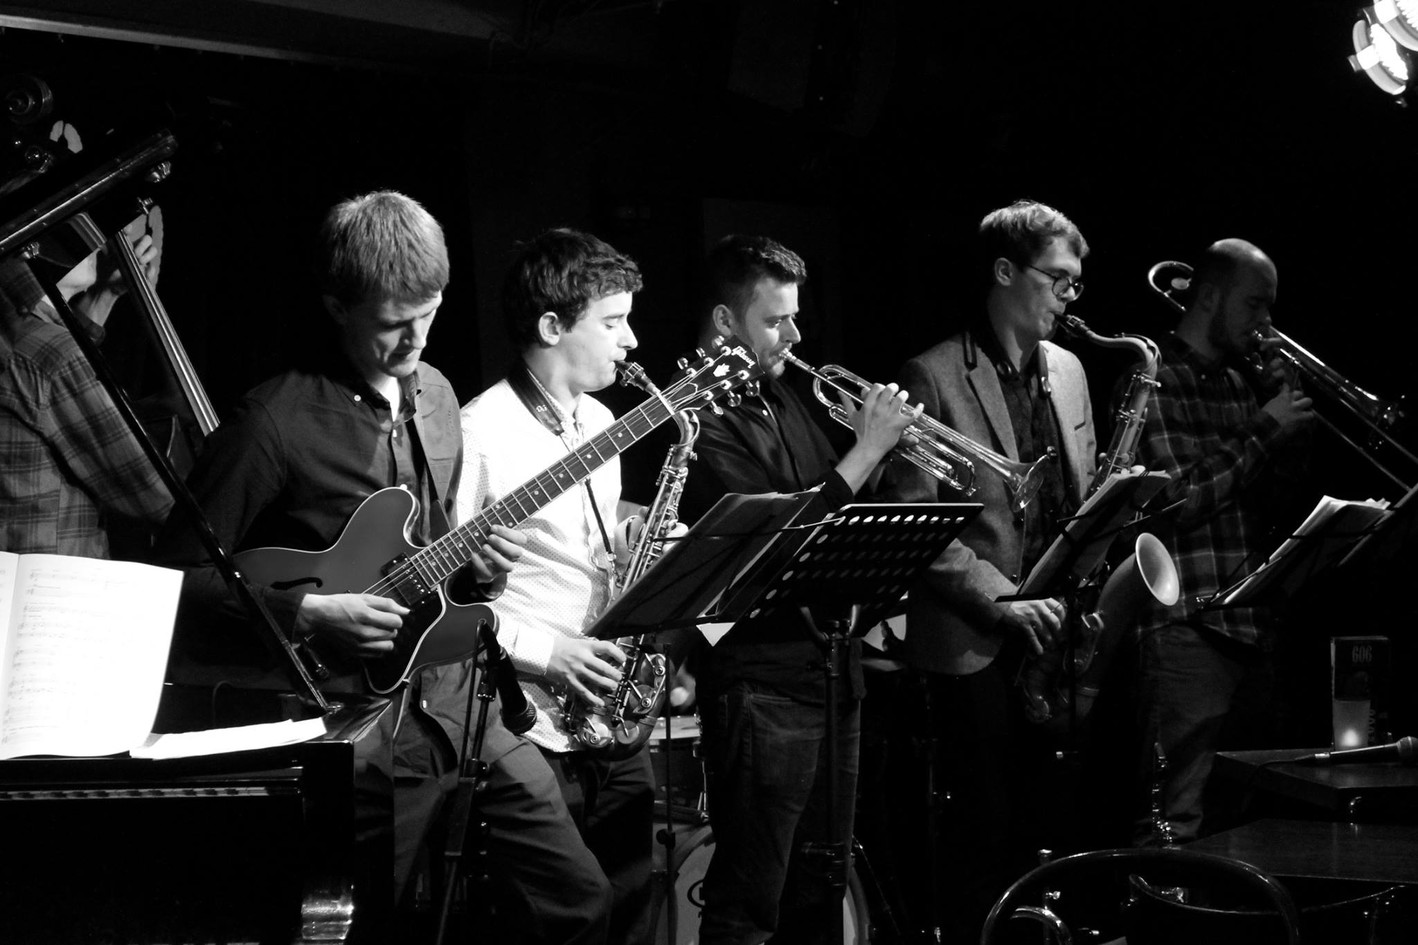 Billy Marrows Octet at the 606 Jazz Club 2